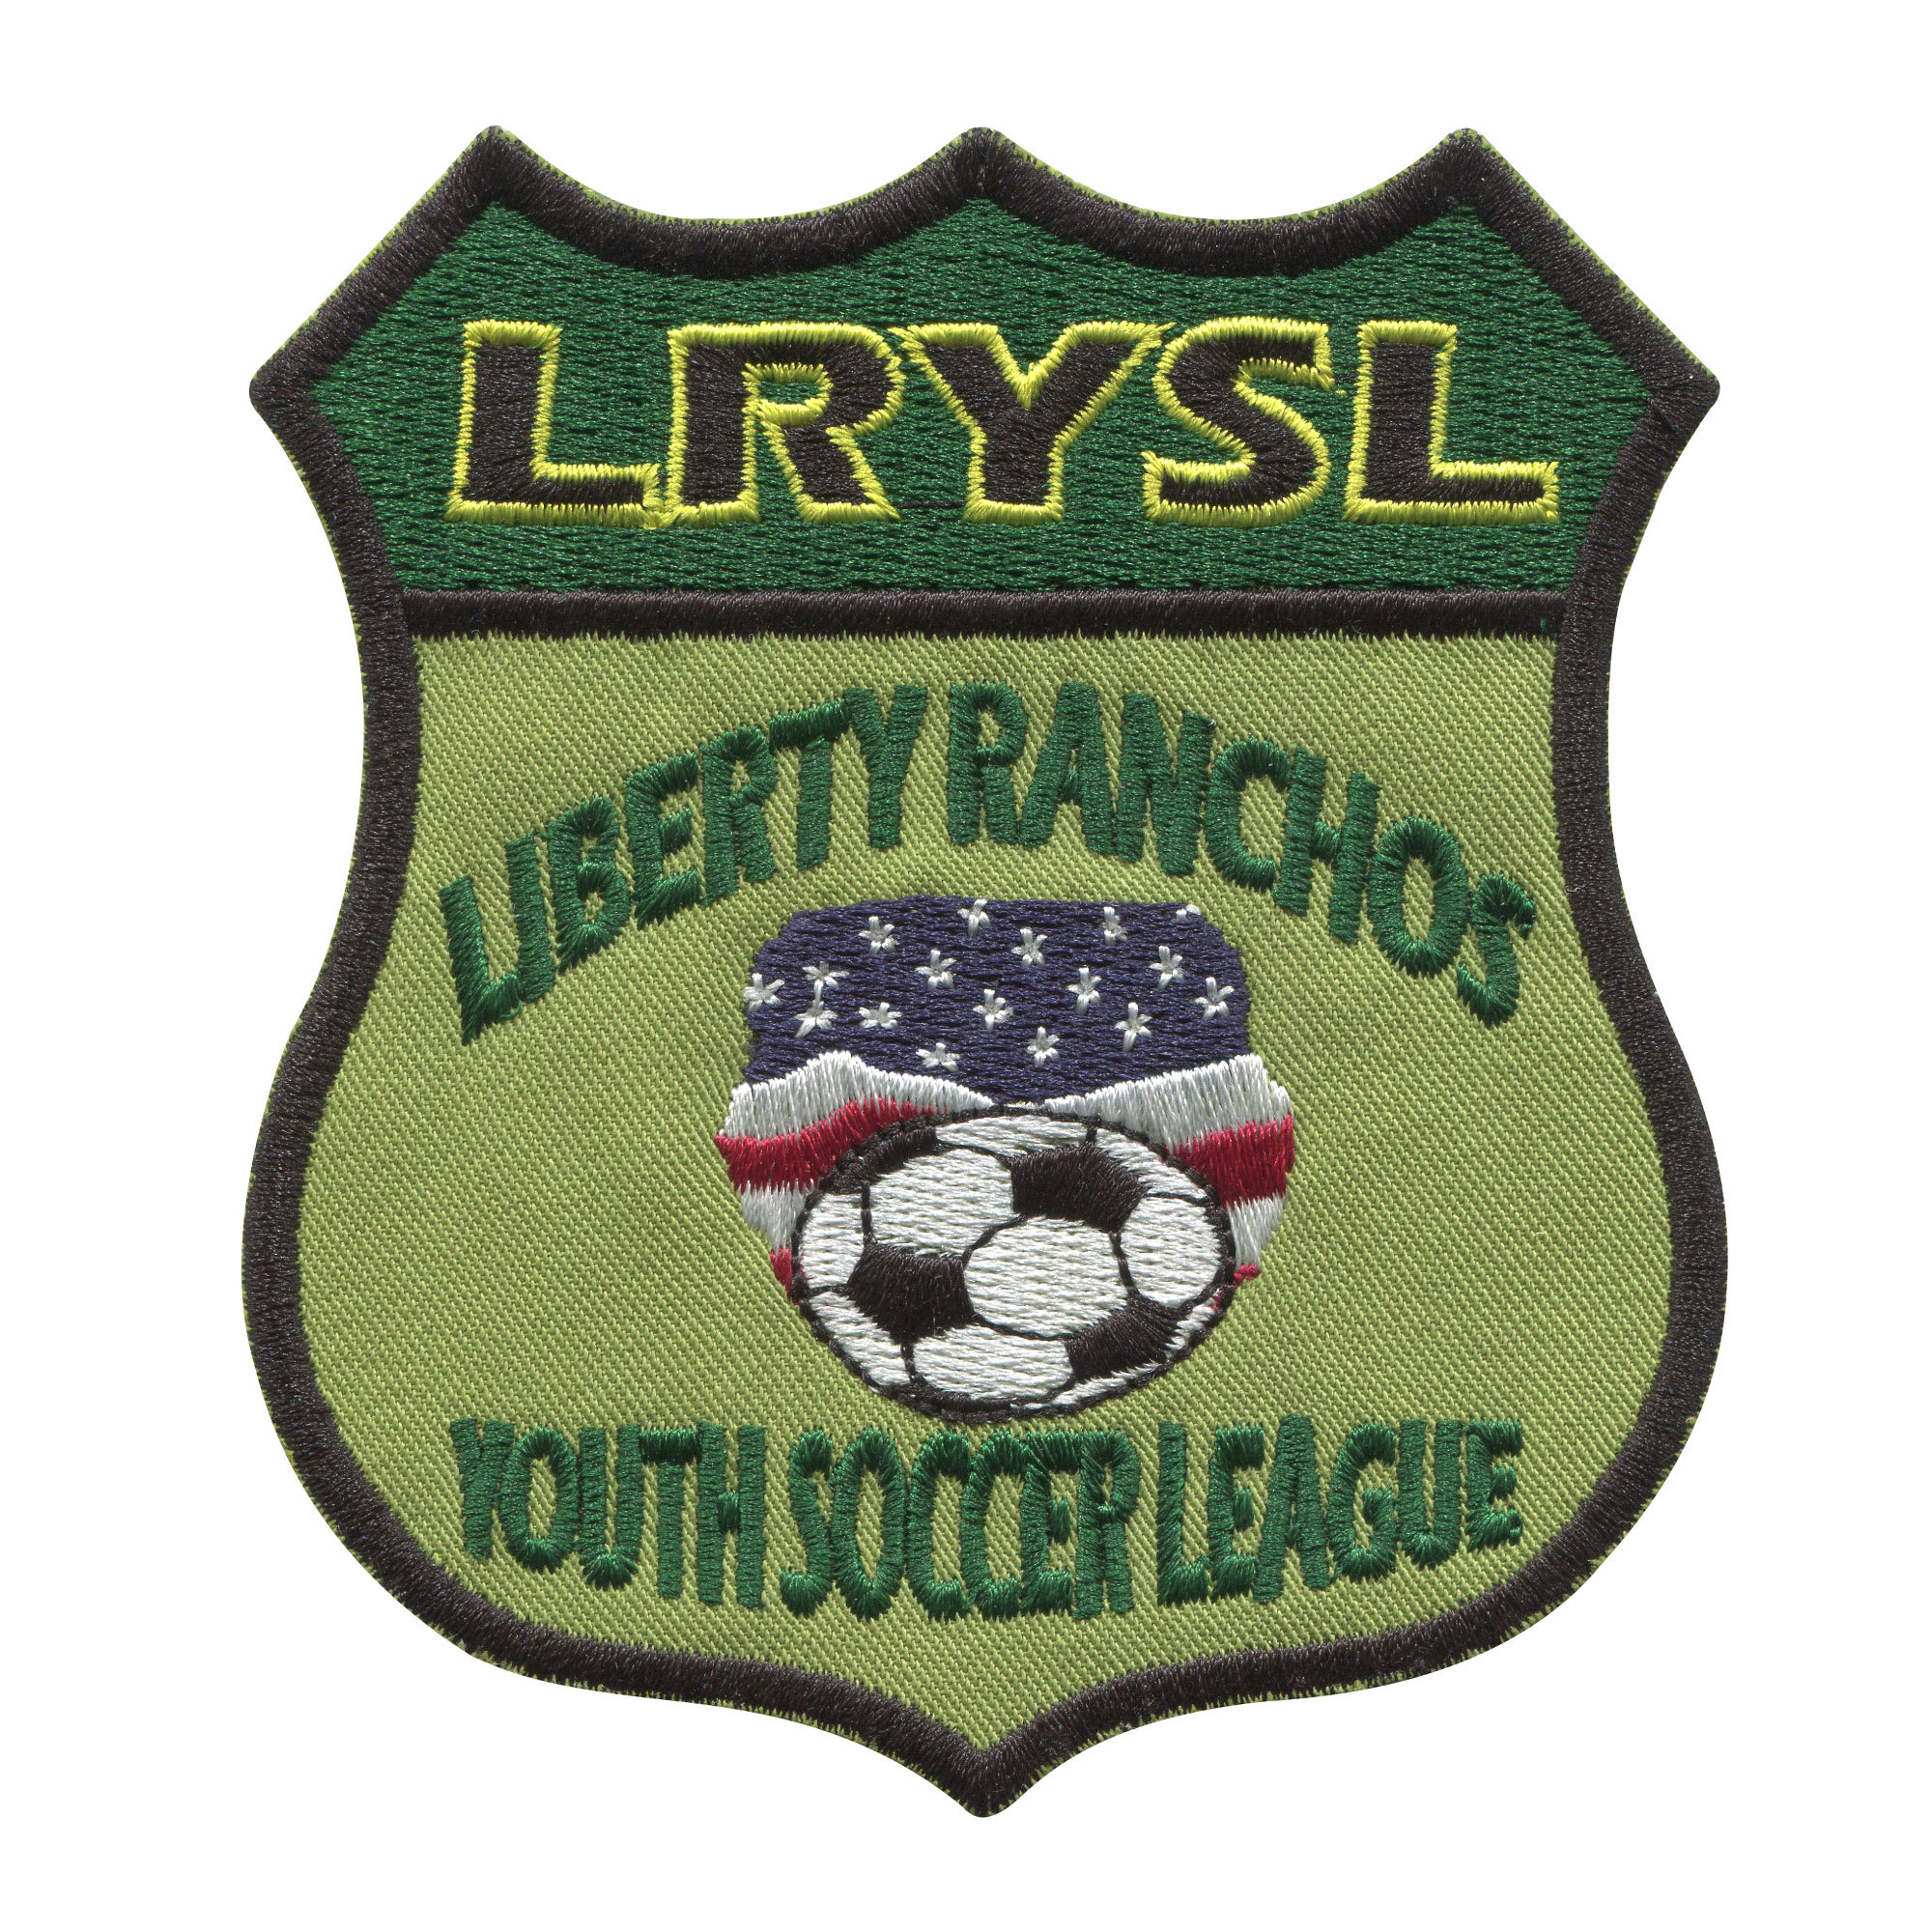 Soccer Teams Patches Iron On Soccer Teams Patches